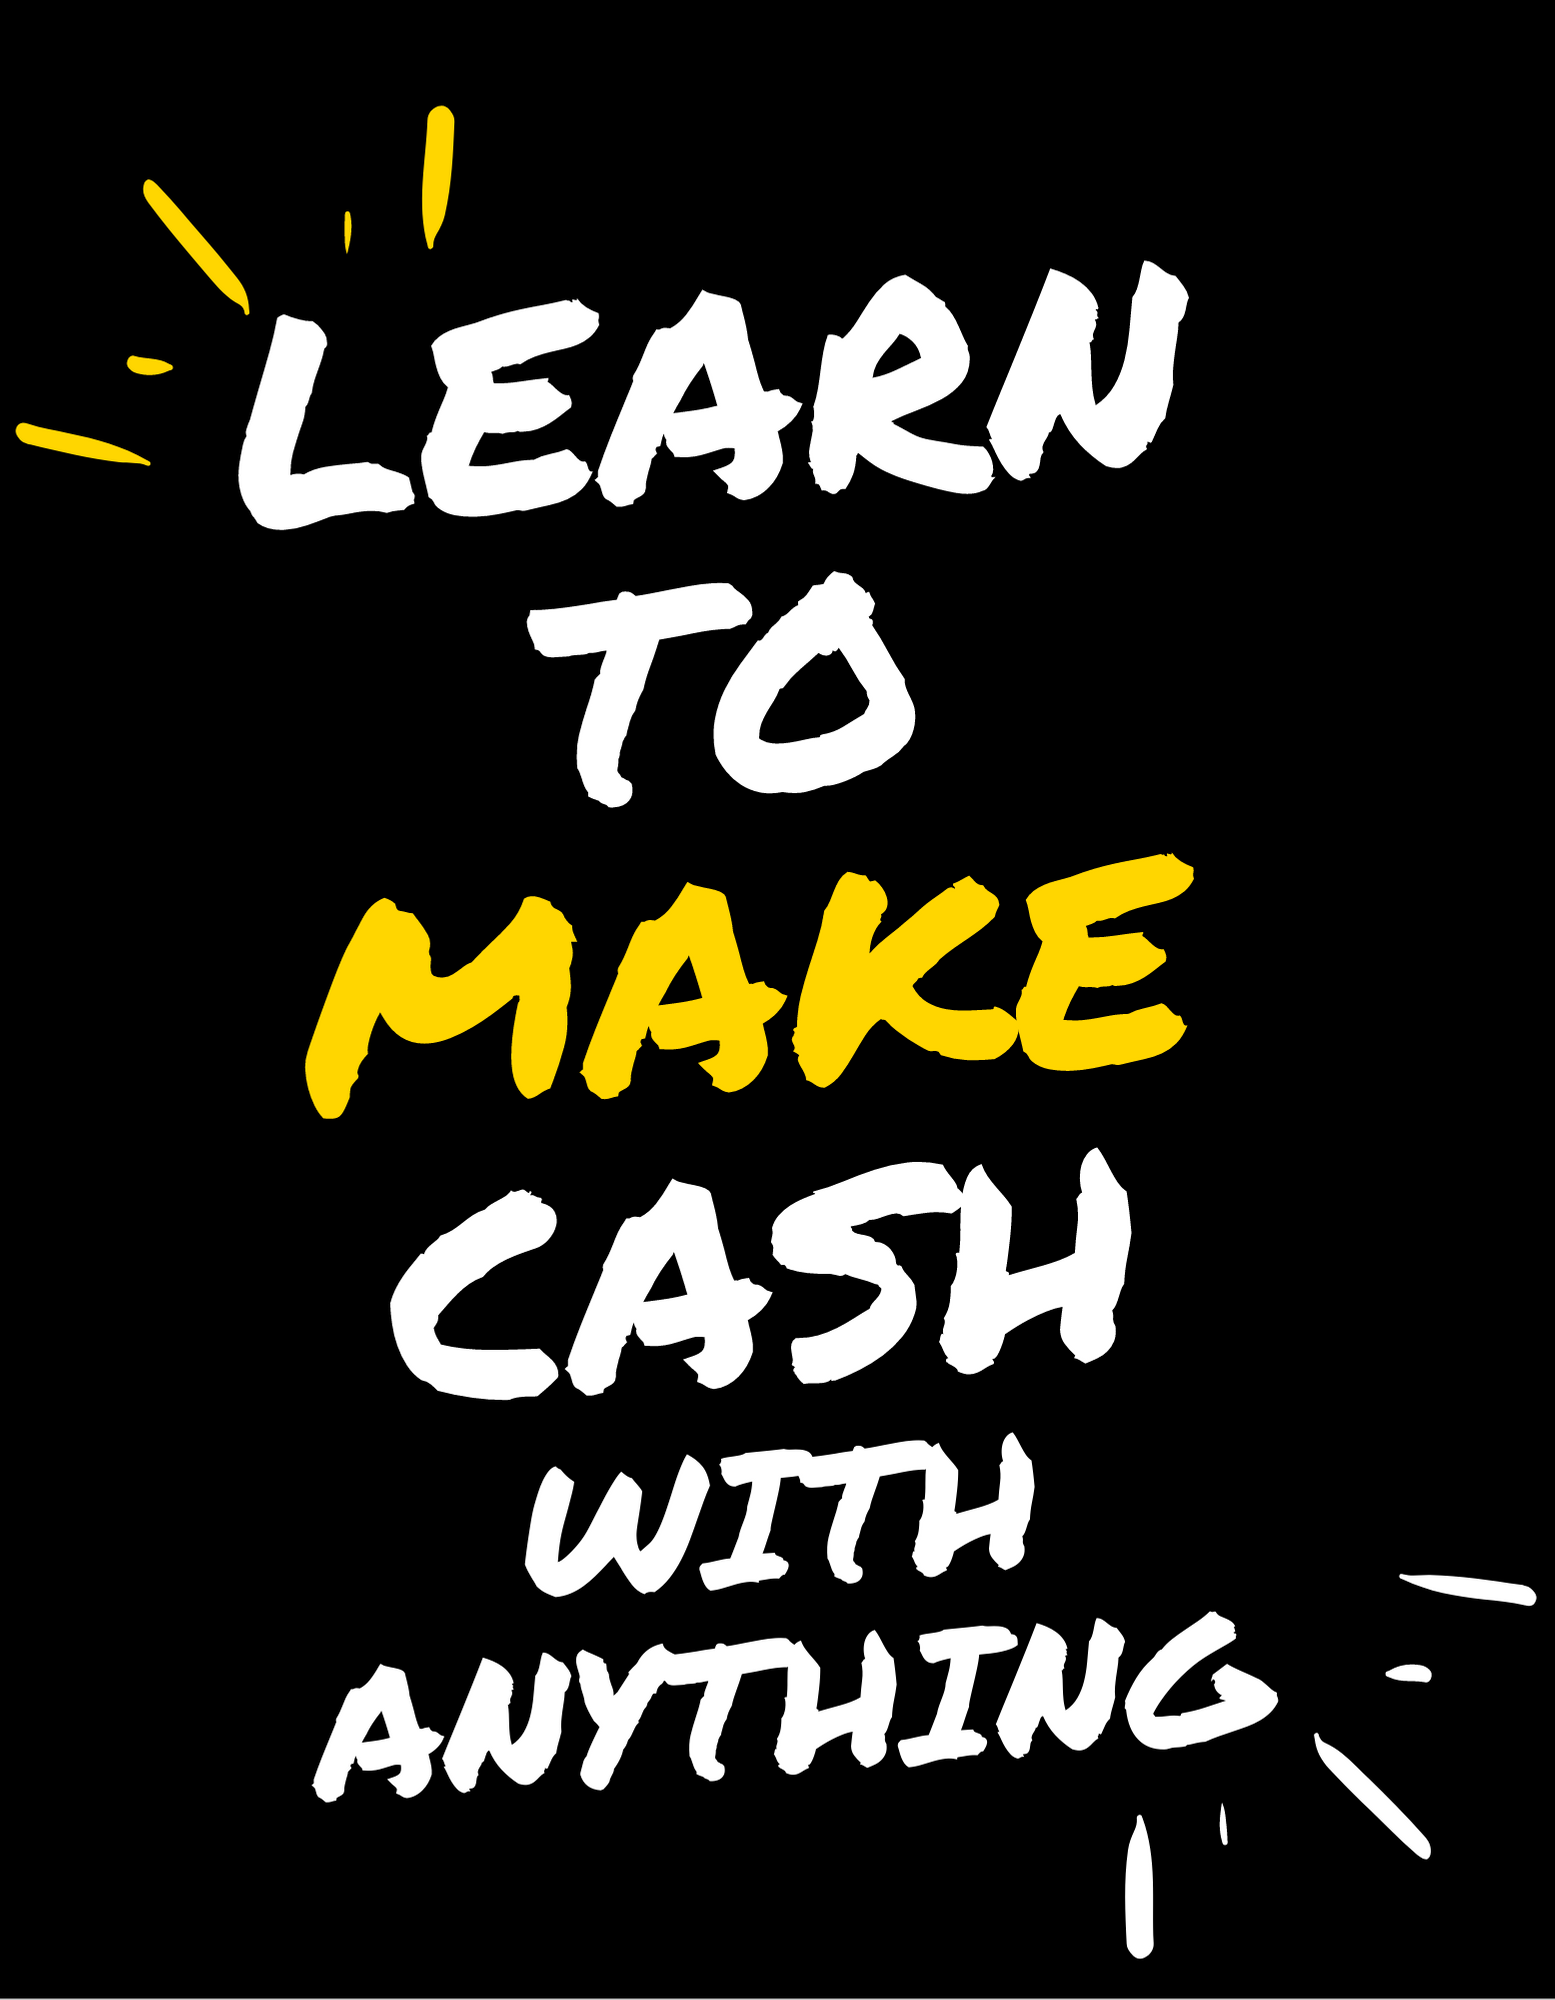 Multiple streams of incomes, Learn to Make cash wITH ANYTHING